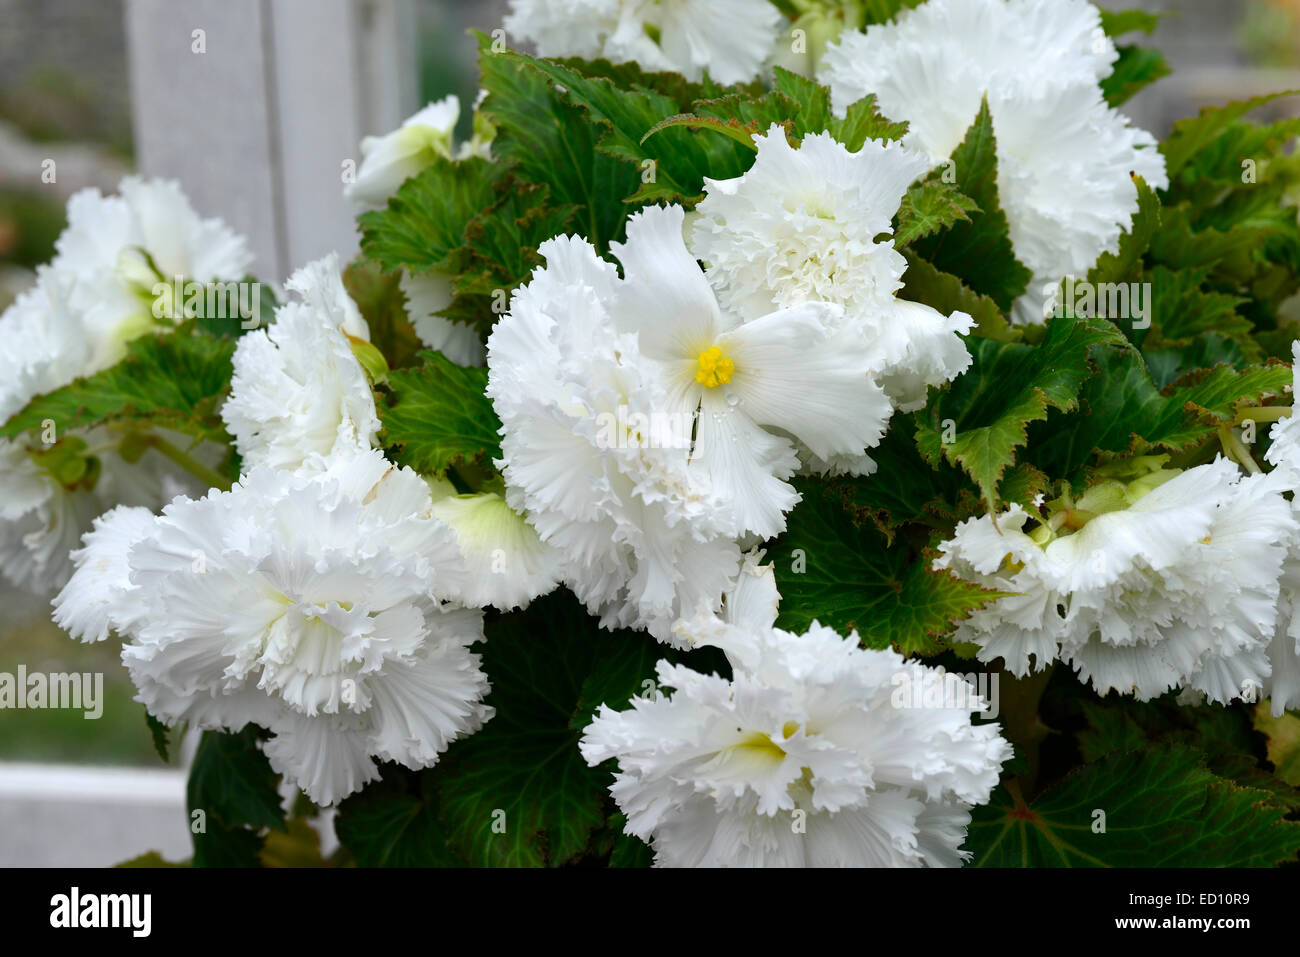 White trailing flower stock photos white trailing flower stock white double begonia trailing plant tender annual bulb flower flowers flowering bedding rm floral stock mightylinksfo